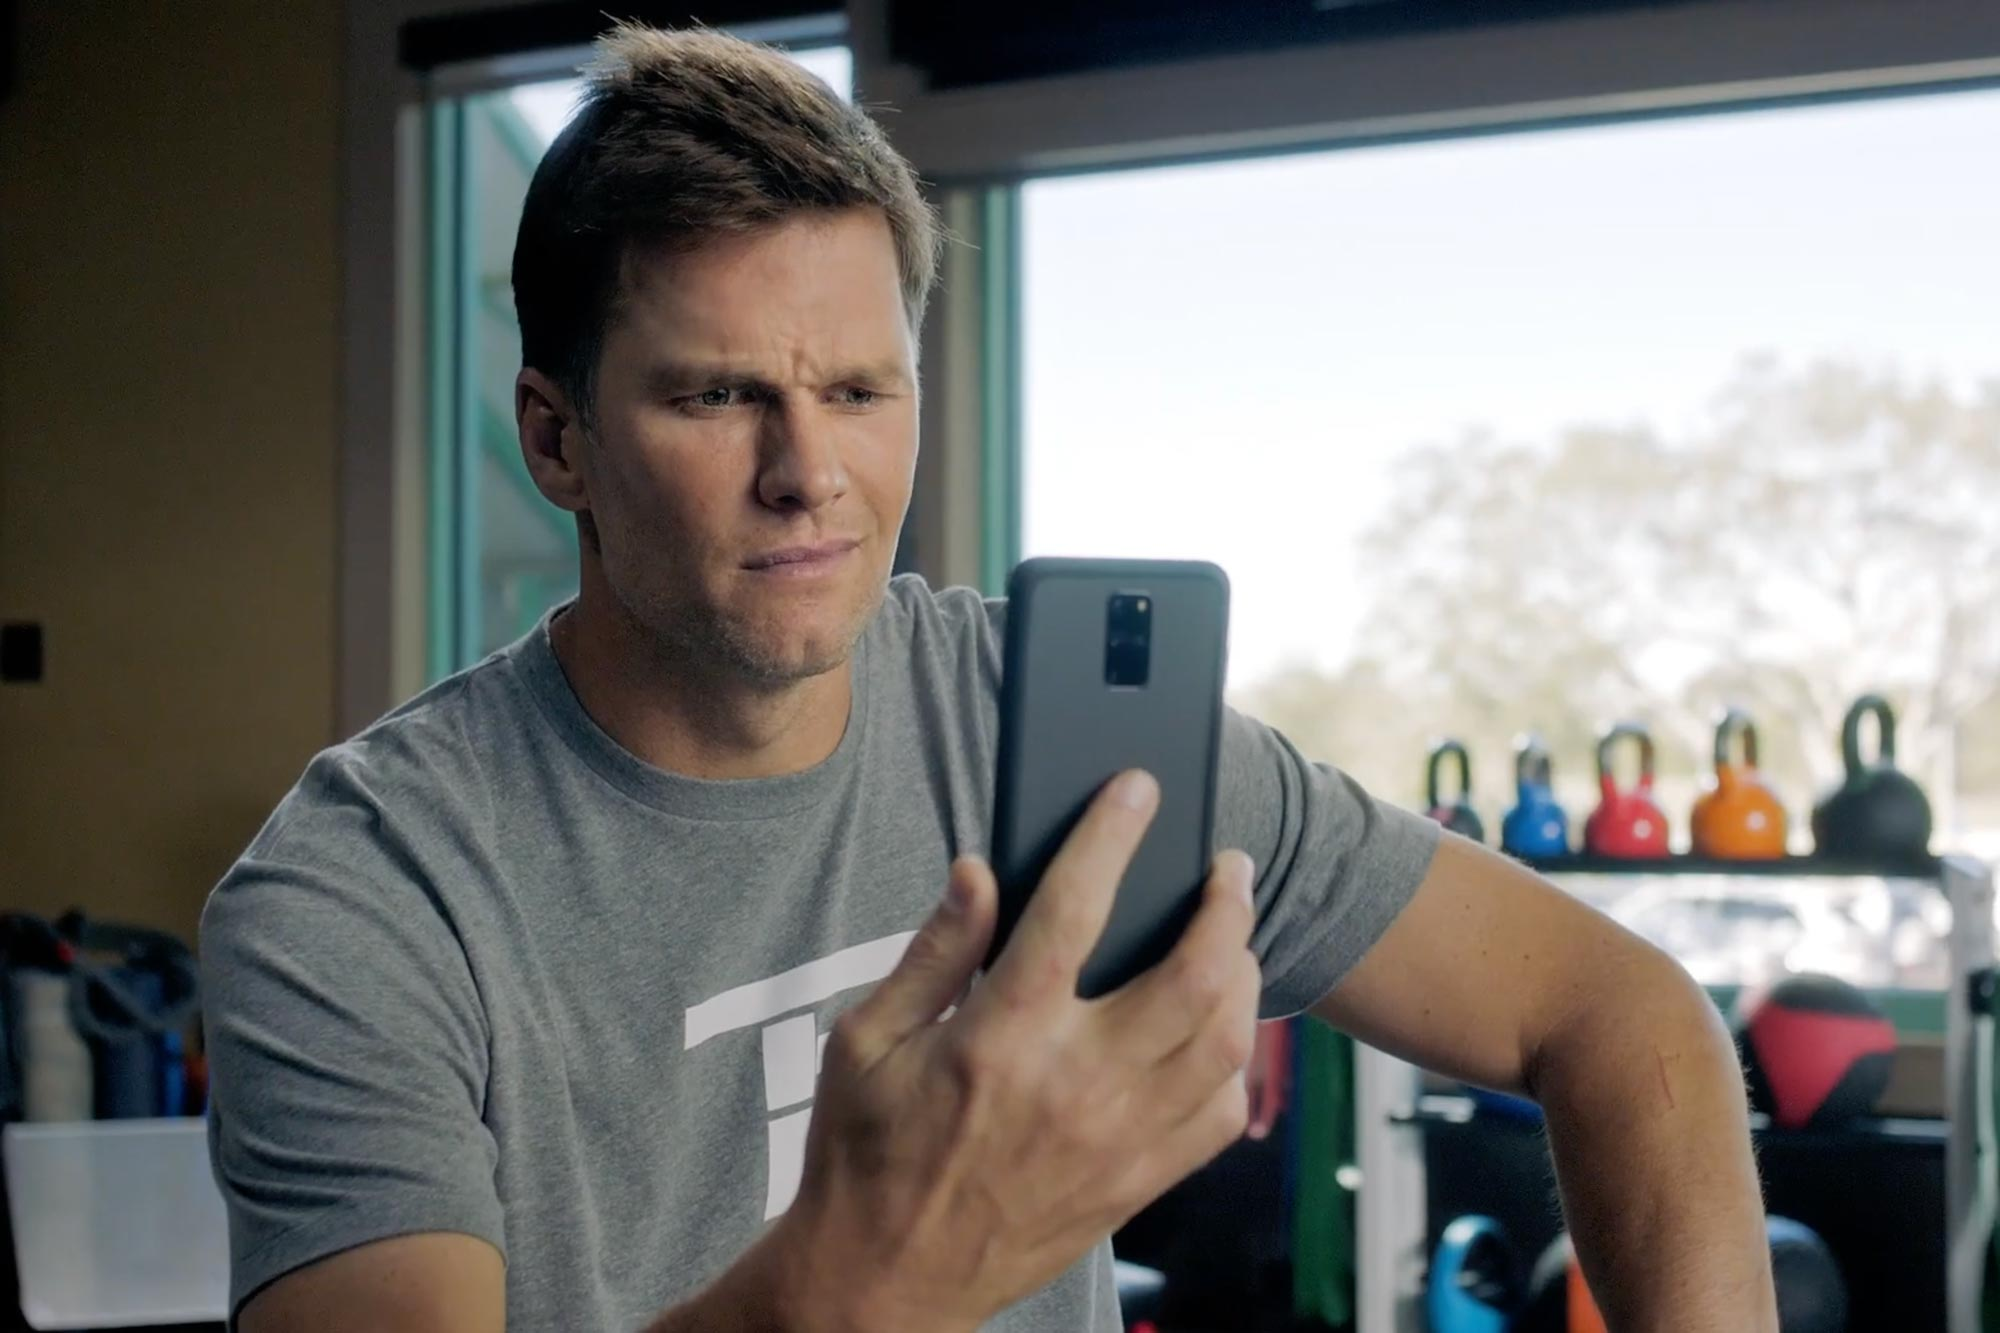 T-Mobile claims its ad was banned from the Super Bowl